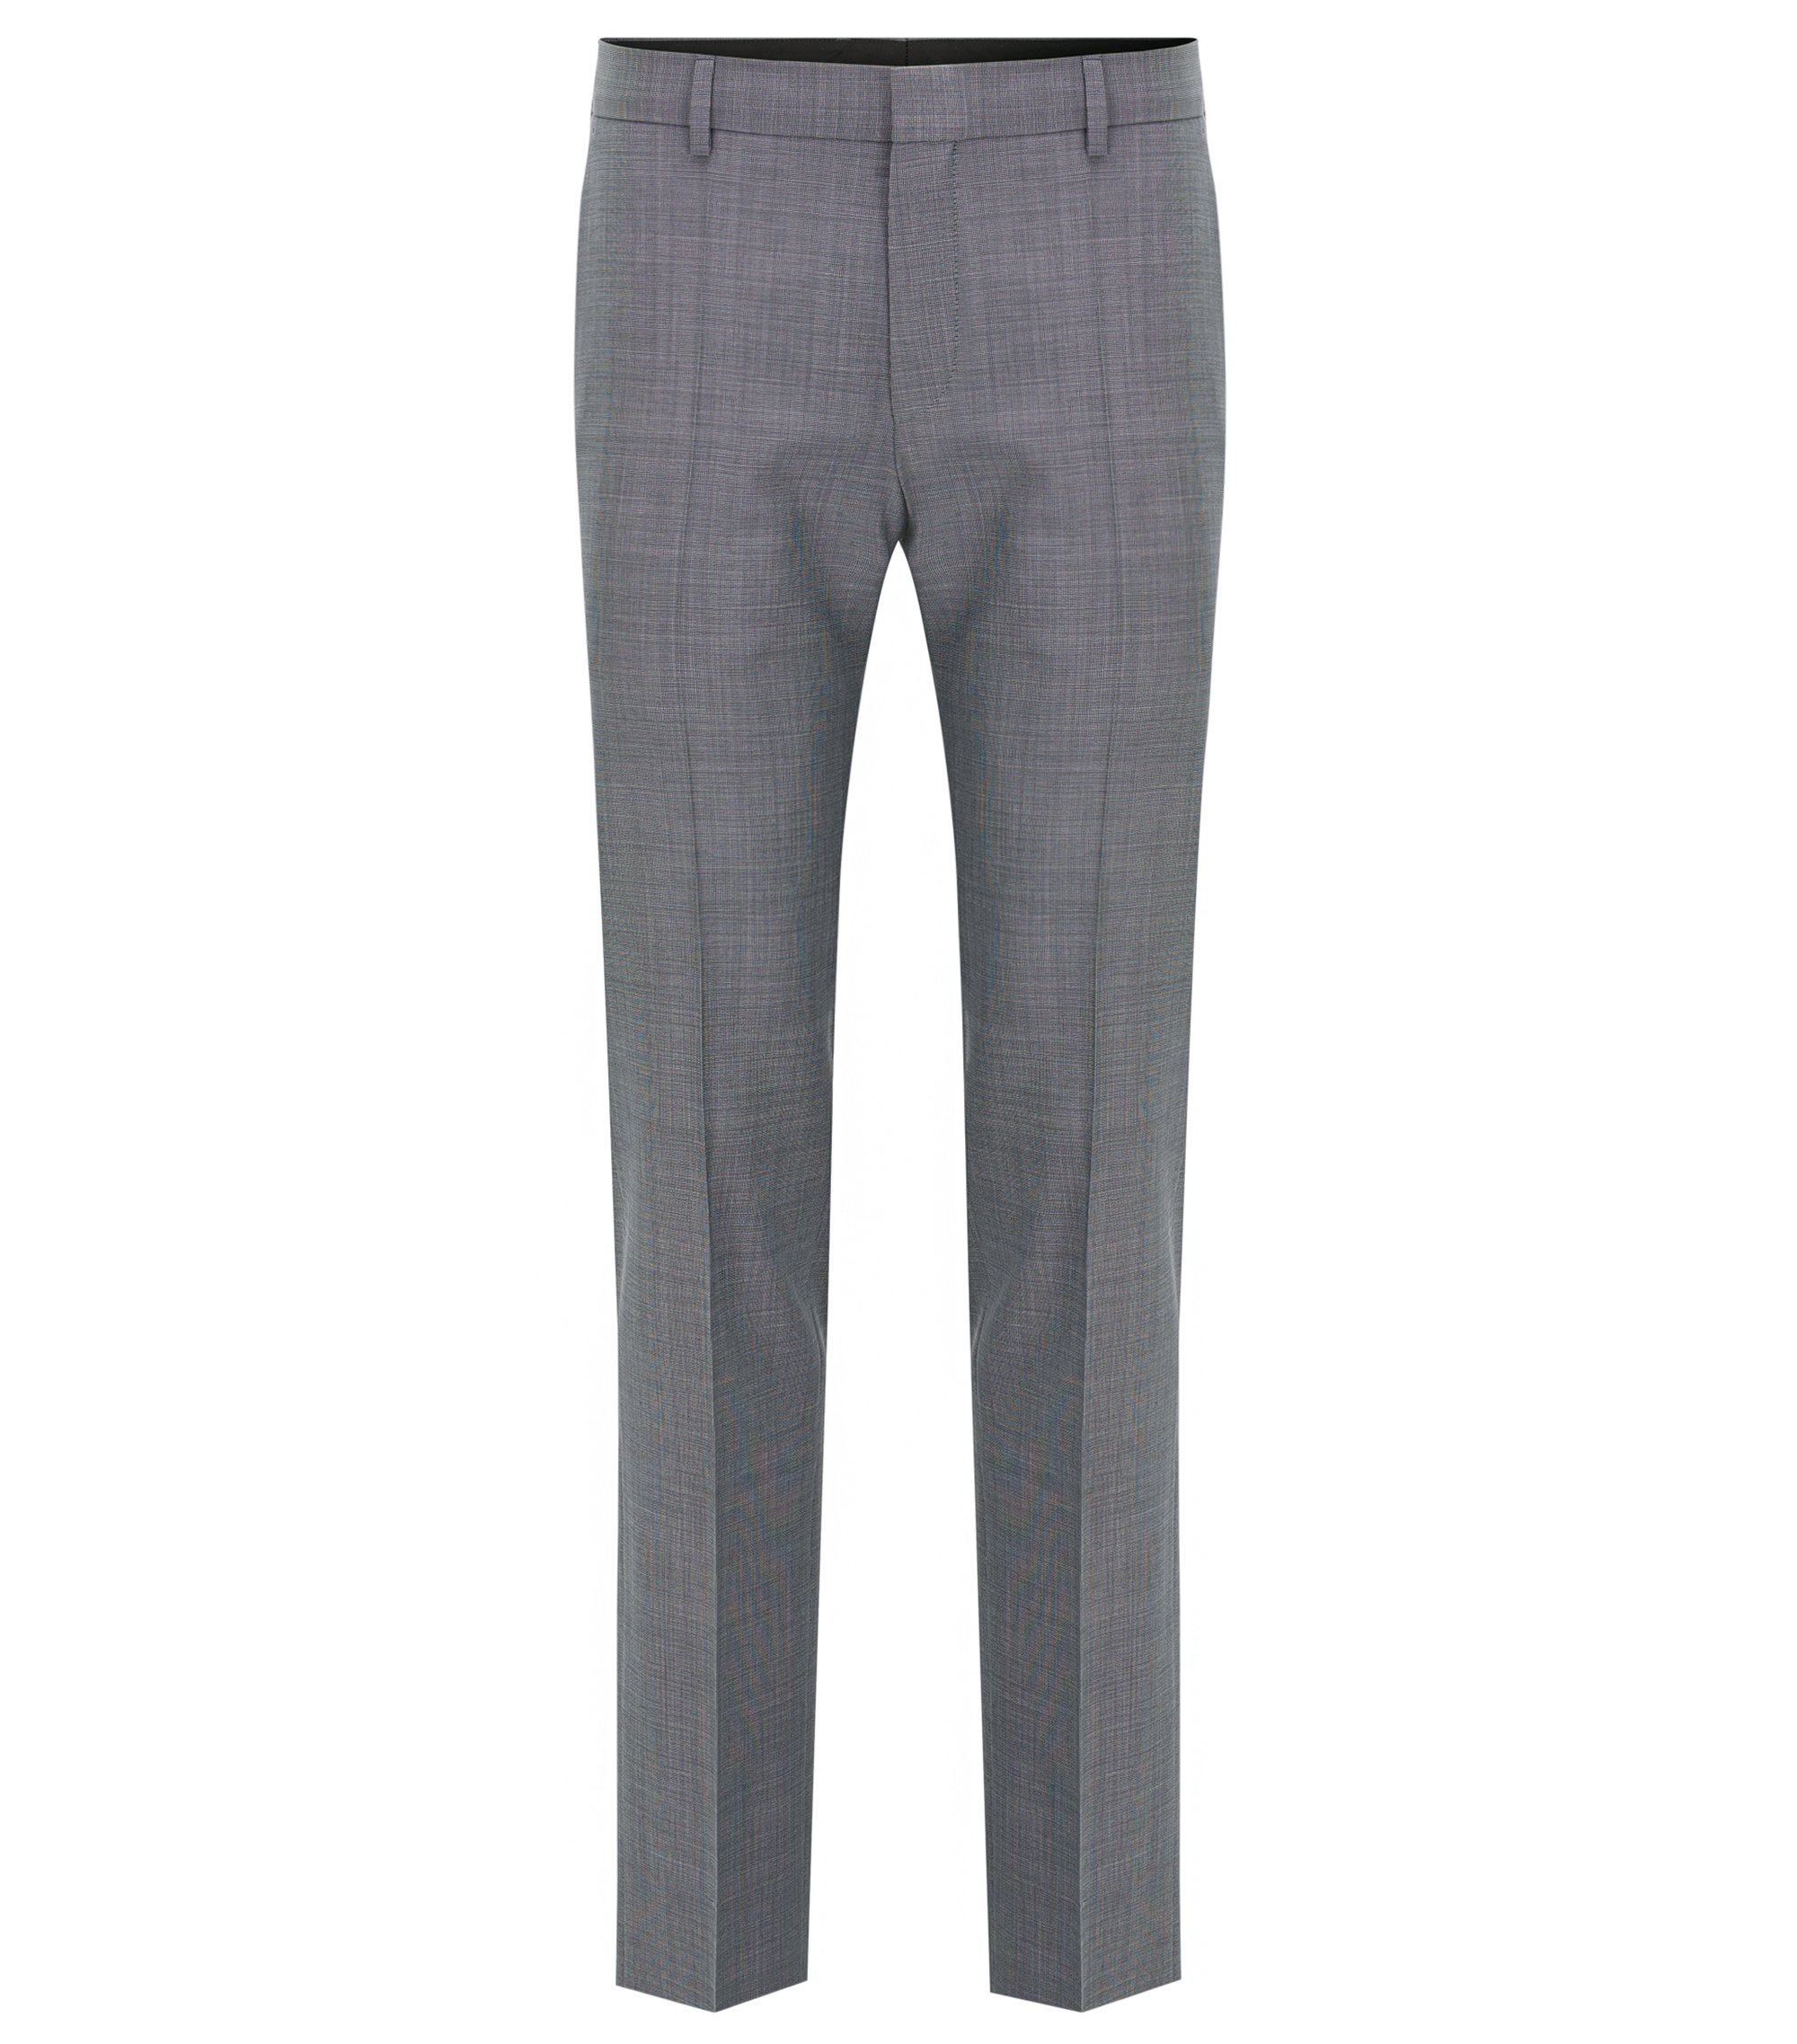 Basketweave Wool Dress Pant, Slim Fit | C-Genius, Open Grey